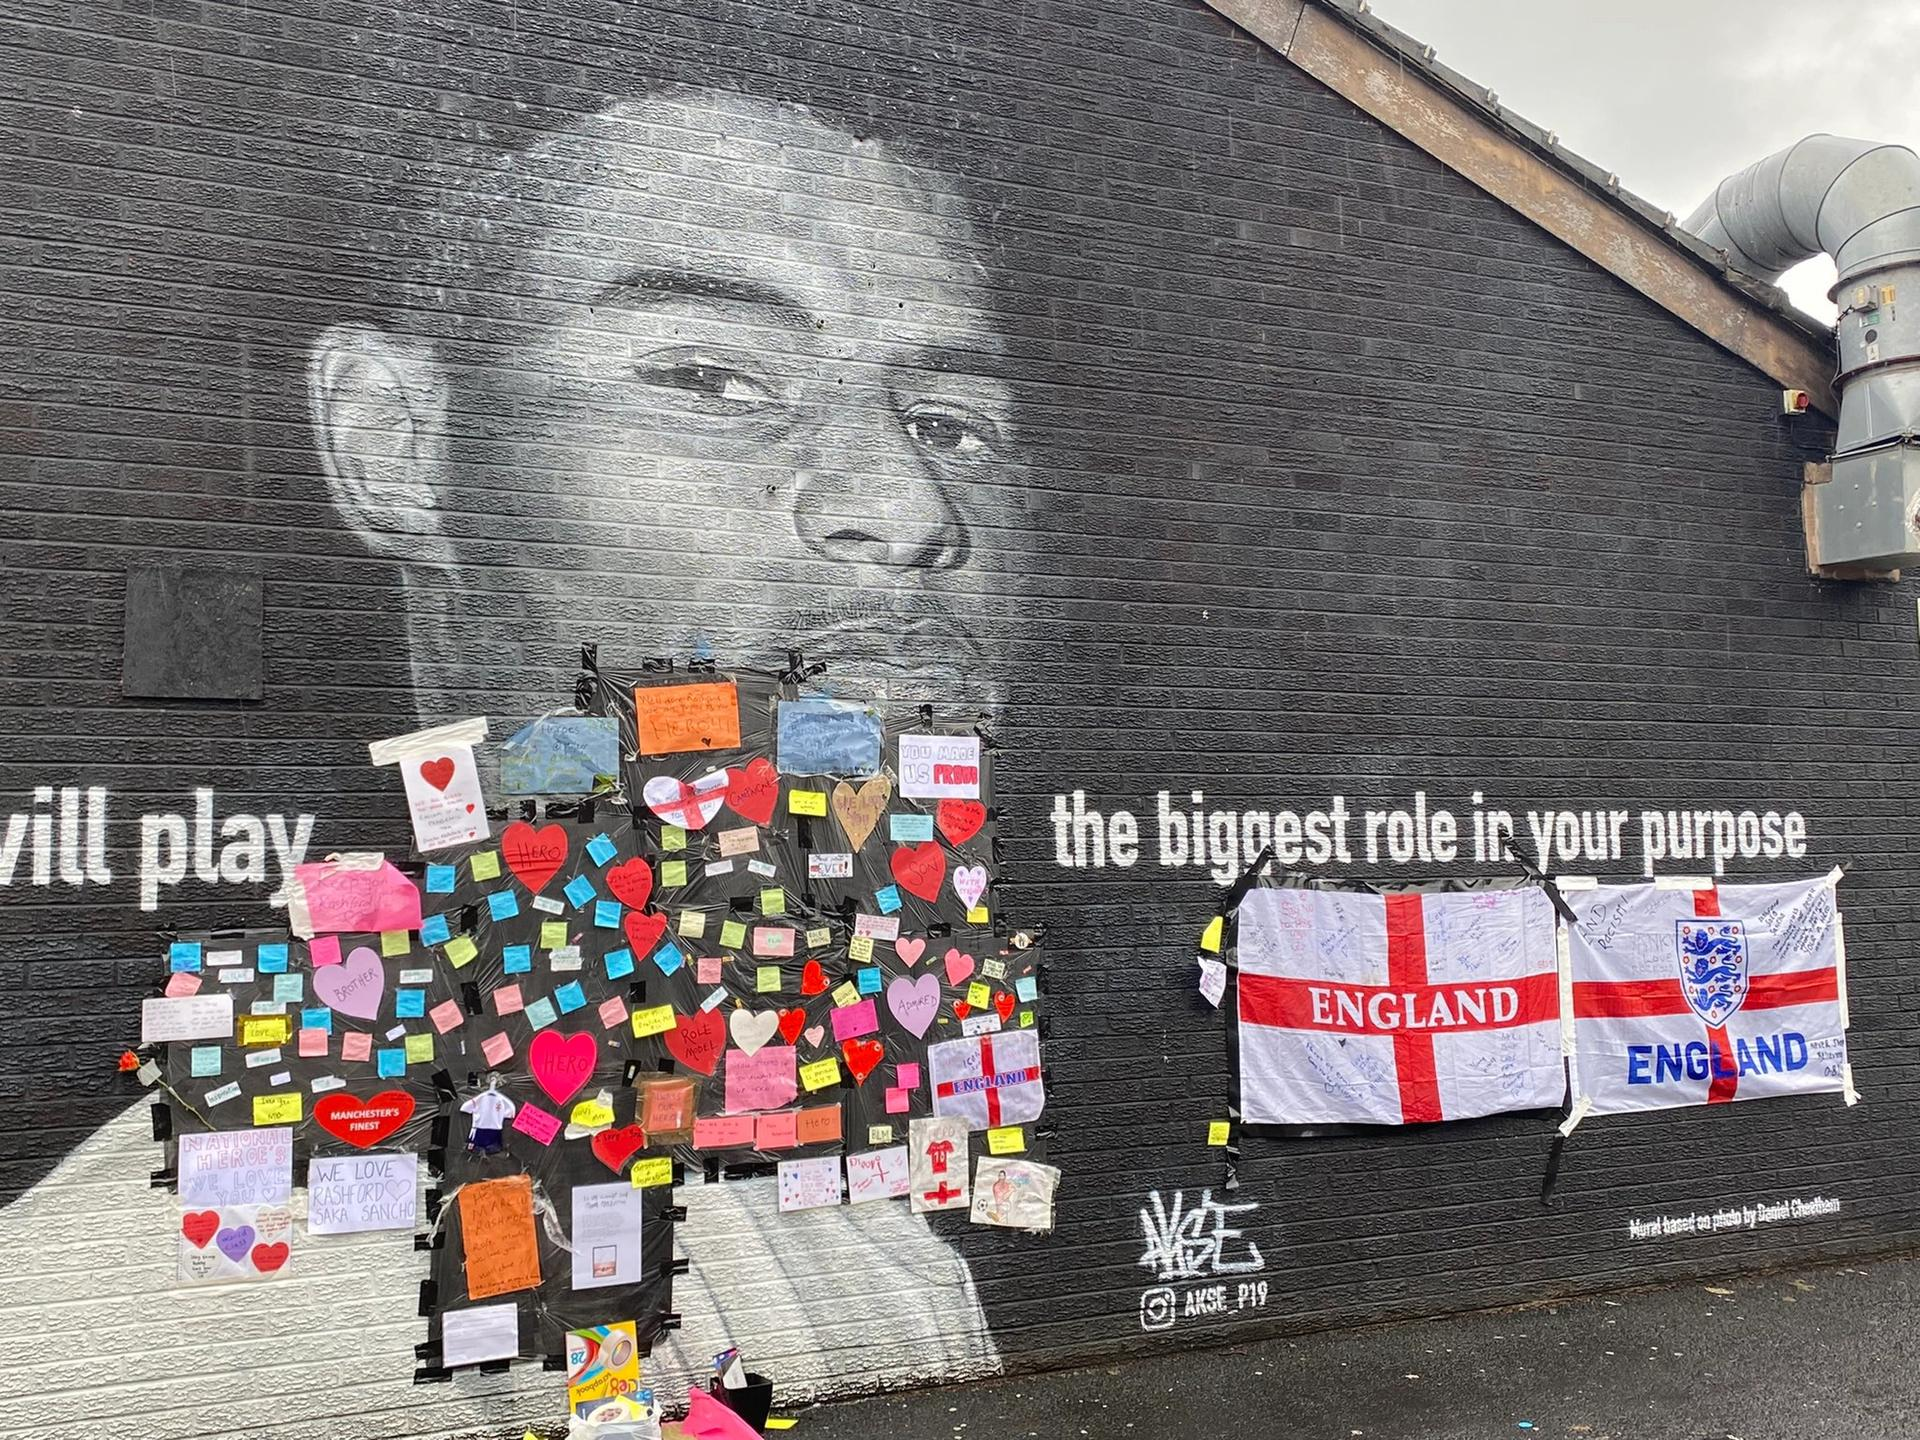 A mural of Marcus Rashford in Withington, Manchester Twitter